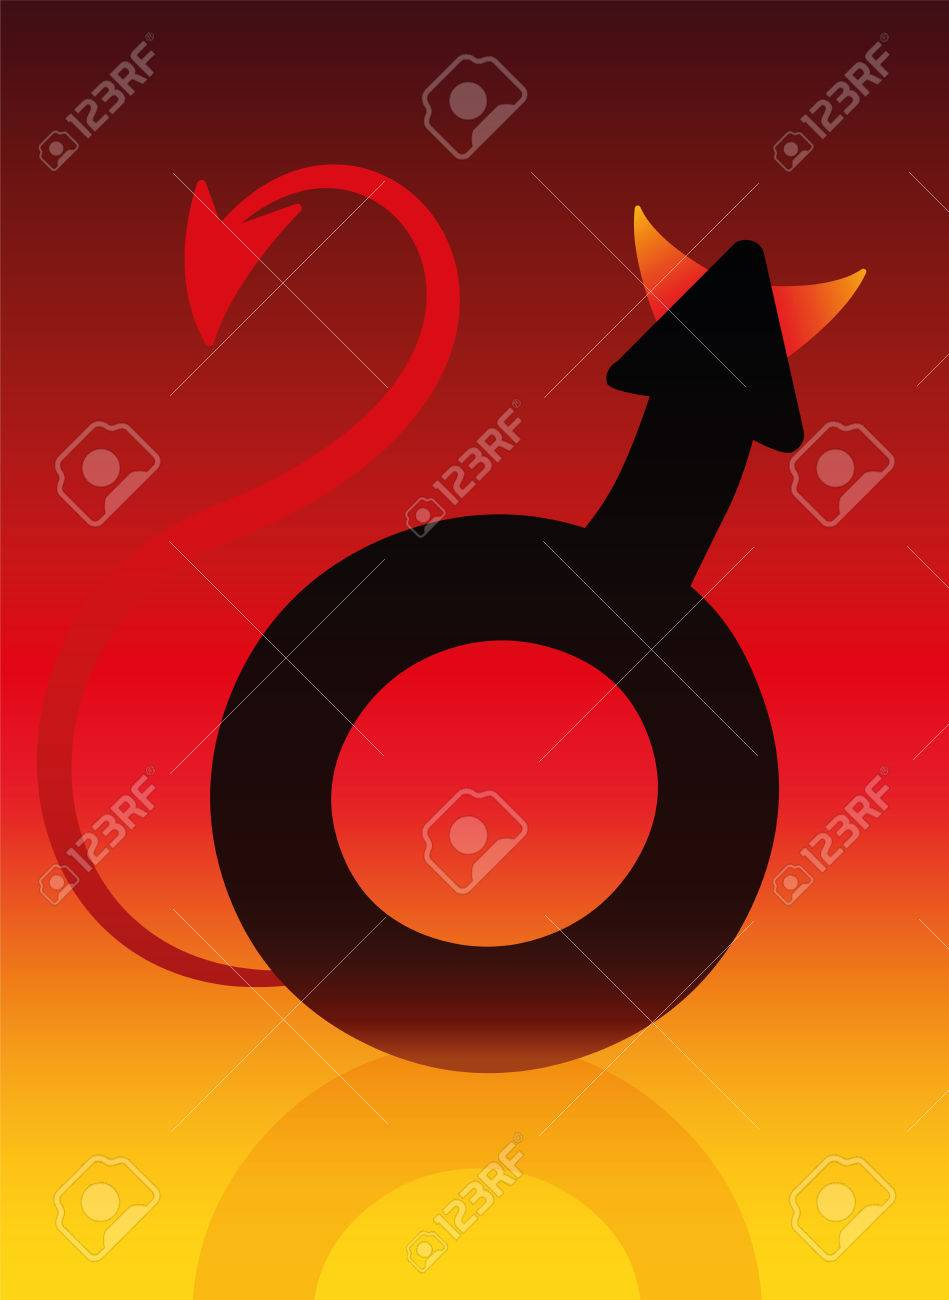 Male devil symbol with tails and horns on blazing background male devil symbol with tails and horns on blazing background as a symbol for a bad biocorpaavc Images